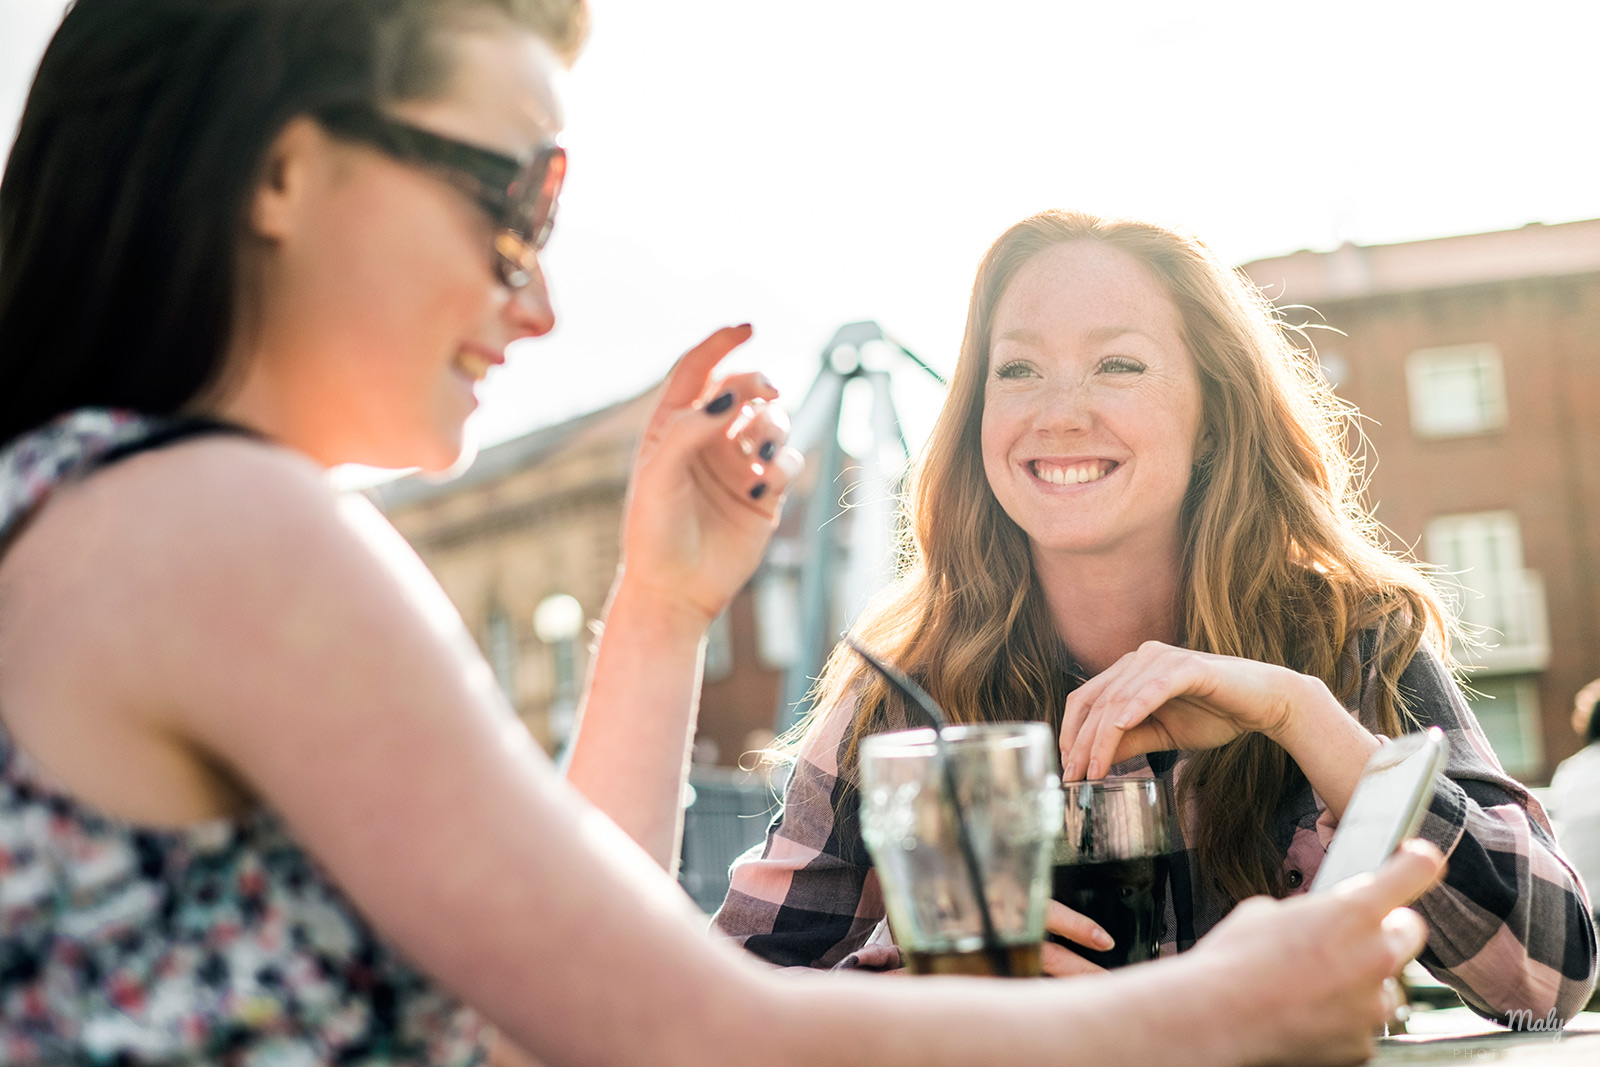 Do YOU look forward to wine o'clock? Alcohol counsellor warns social media is 'normalising' the drinking habits of busy mums... so are kids at risk?